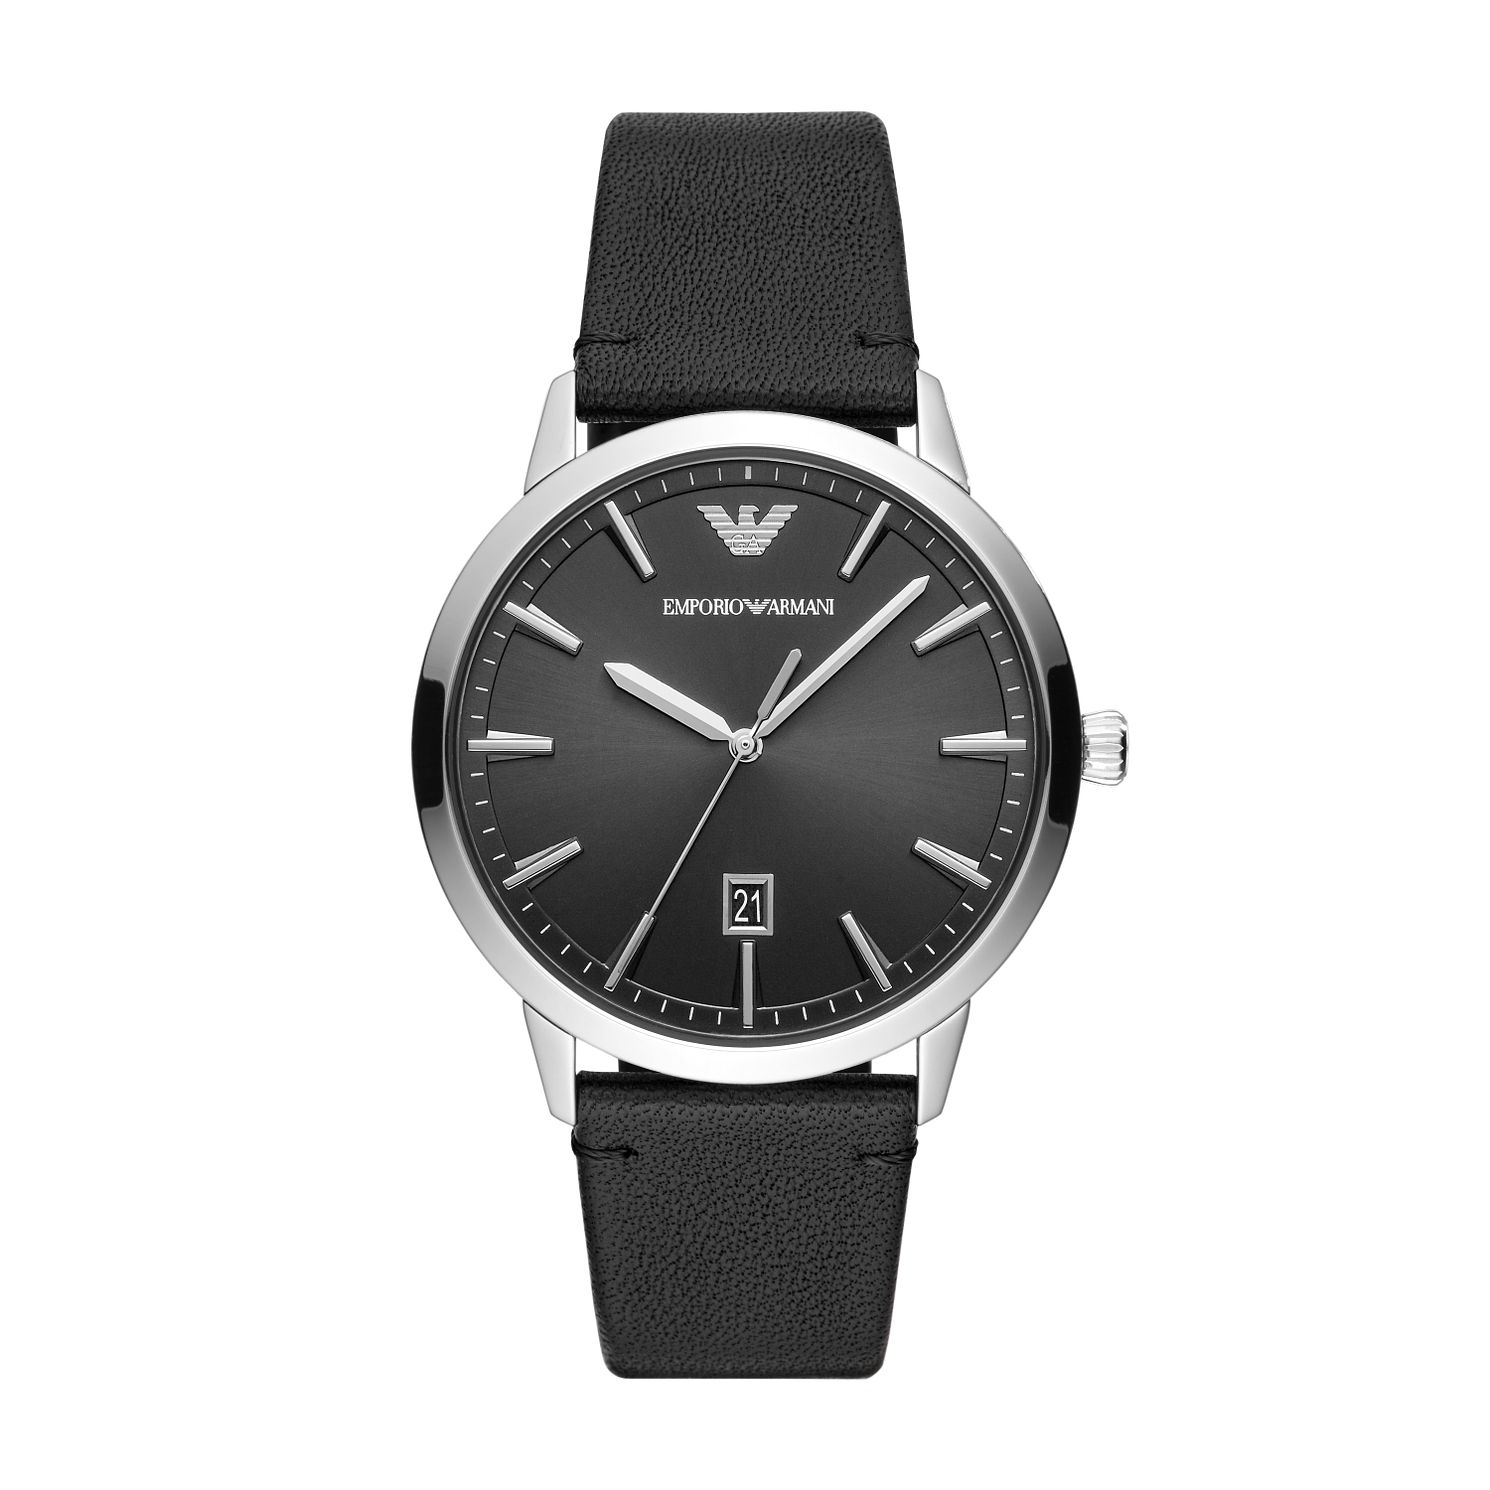 Emporio Armani Men's Black Leather Strap Watch - Product number 3166538